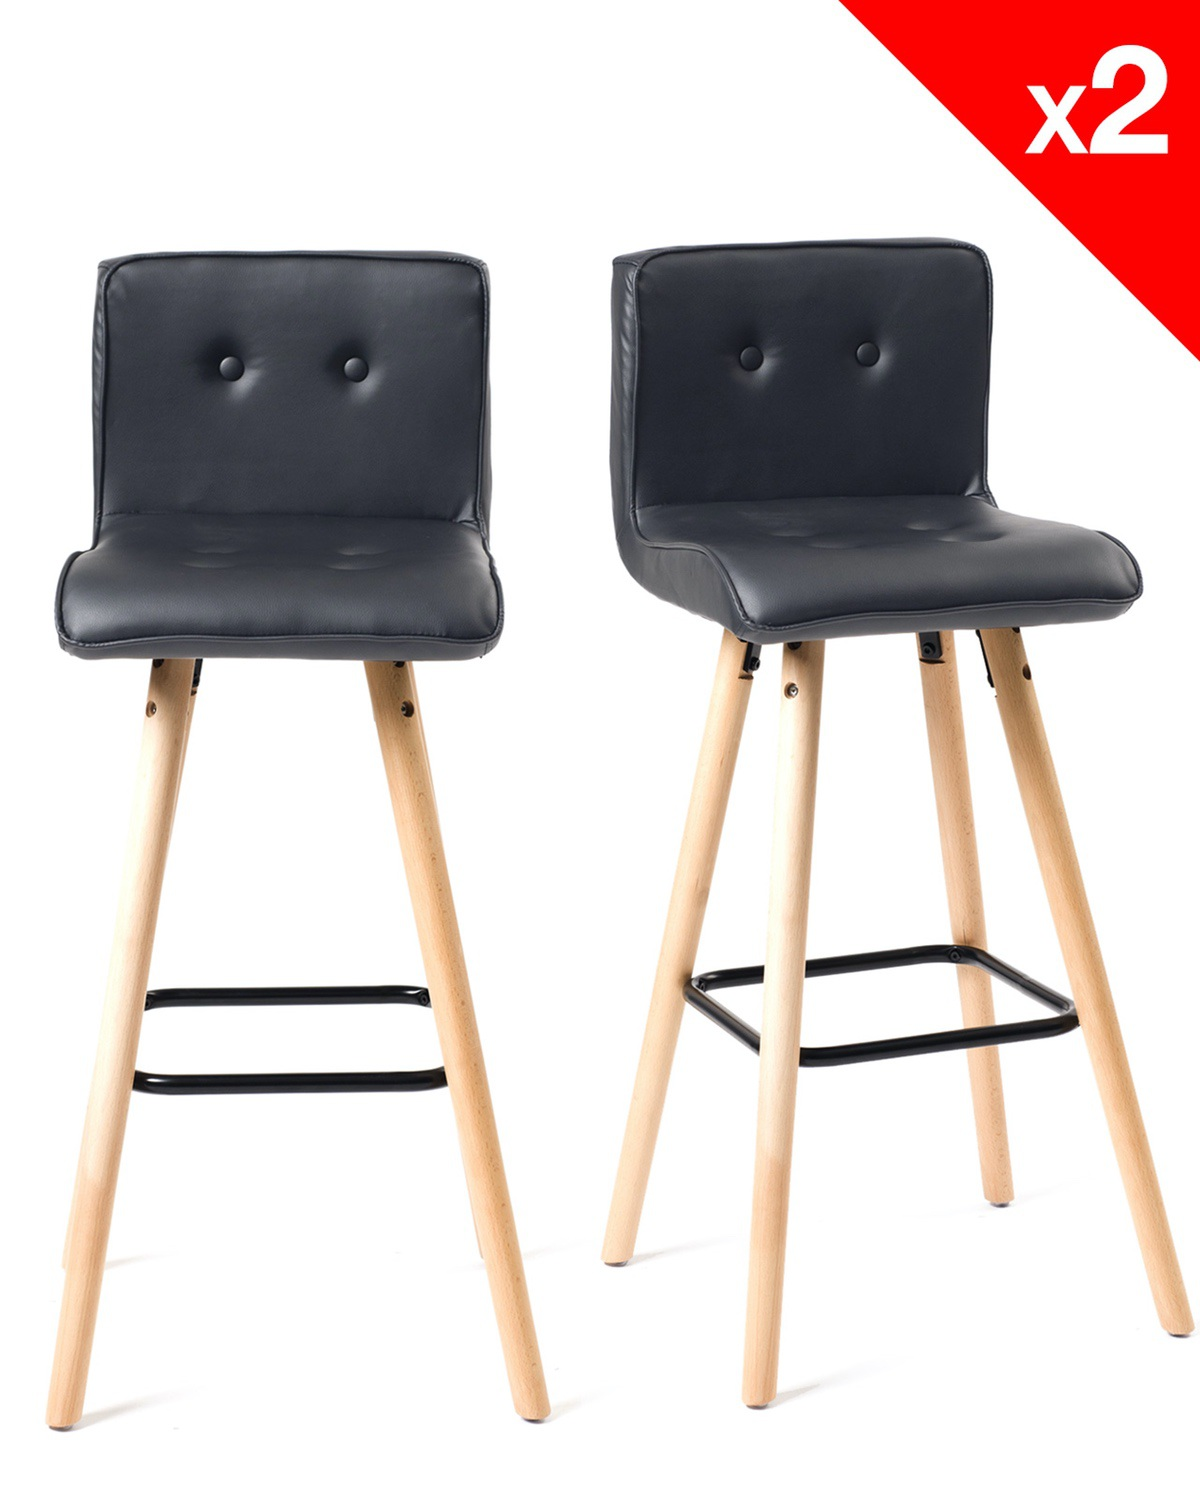 Chaise Bar Cuisine Siwa Lot De 2 Chaises De Bar Bois